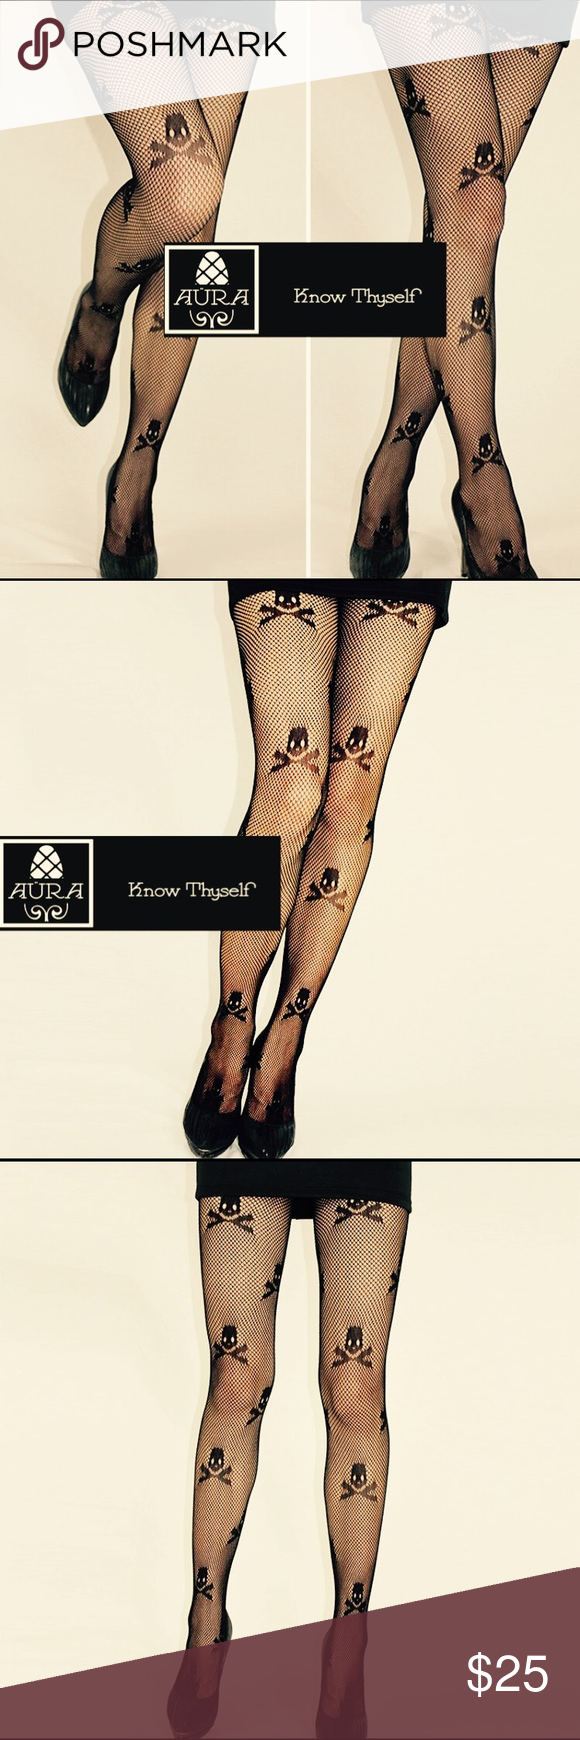 19ff27e49edf4 Skull and Bones Stockings These luxurious stockings are so sexy and buttery  soft to the touch